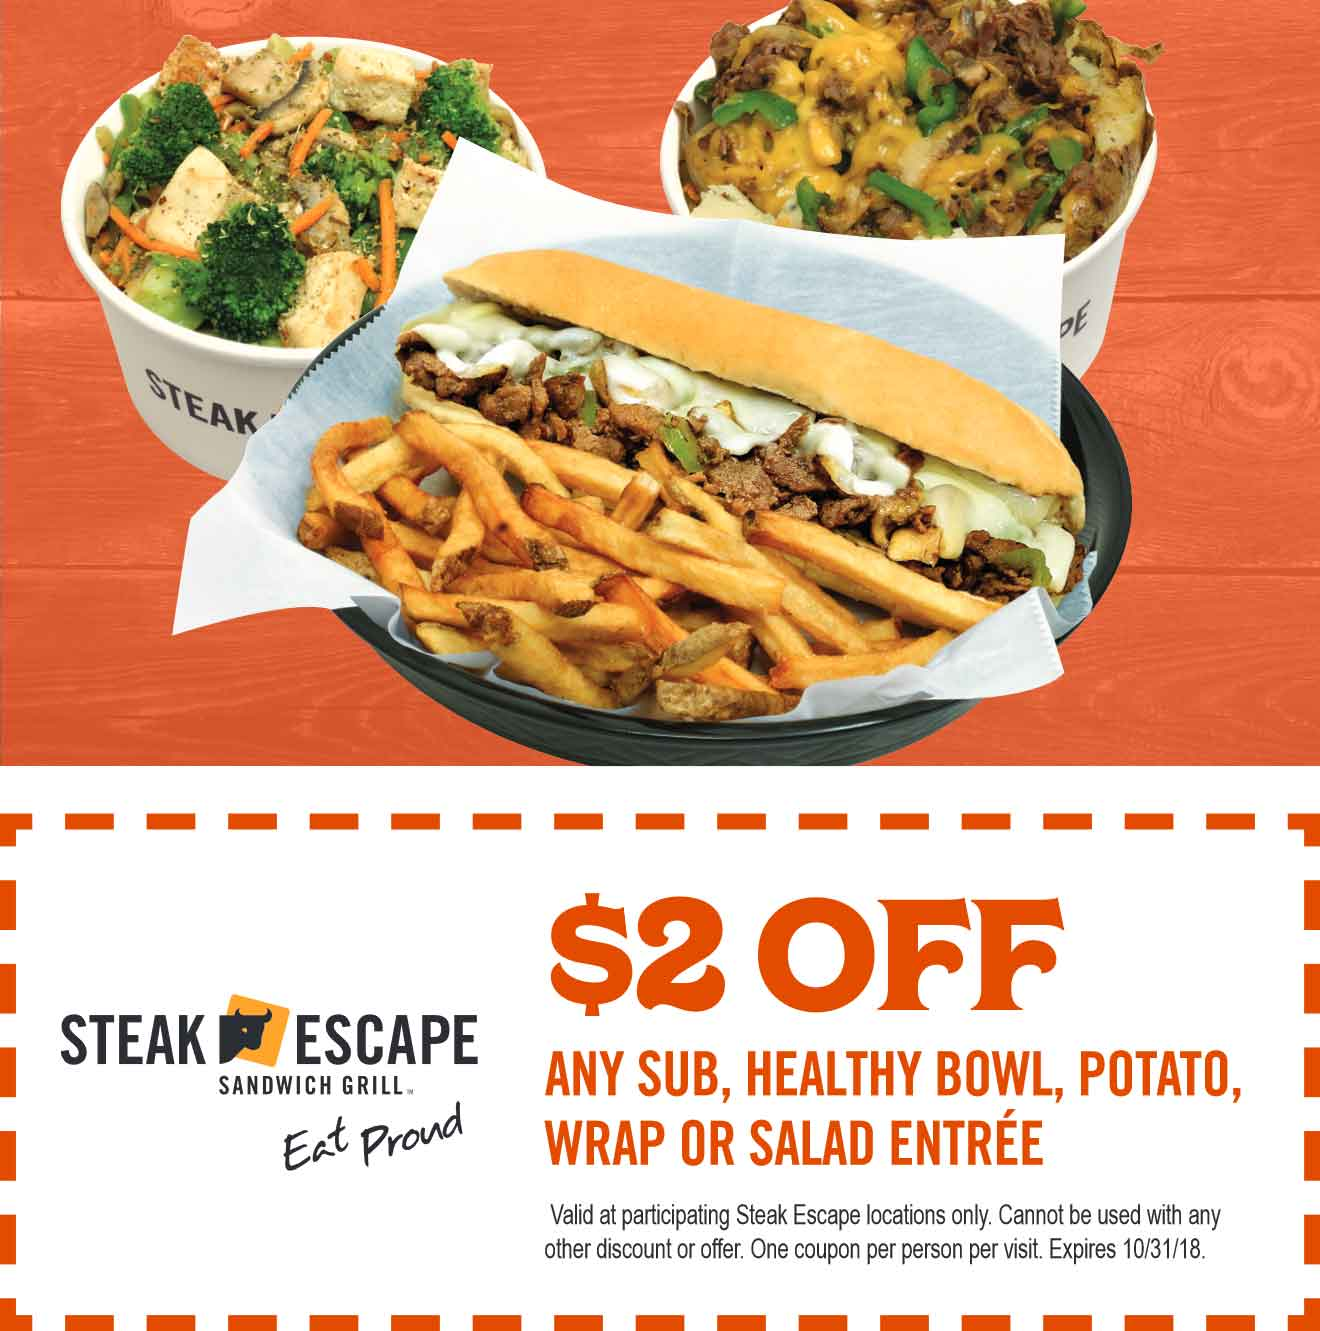 Steak Escape Coupon November 2019 $2 off subs, bowls, wraps & salads at Steak Escape restaurants